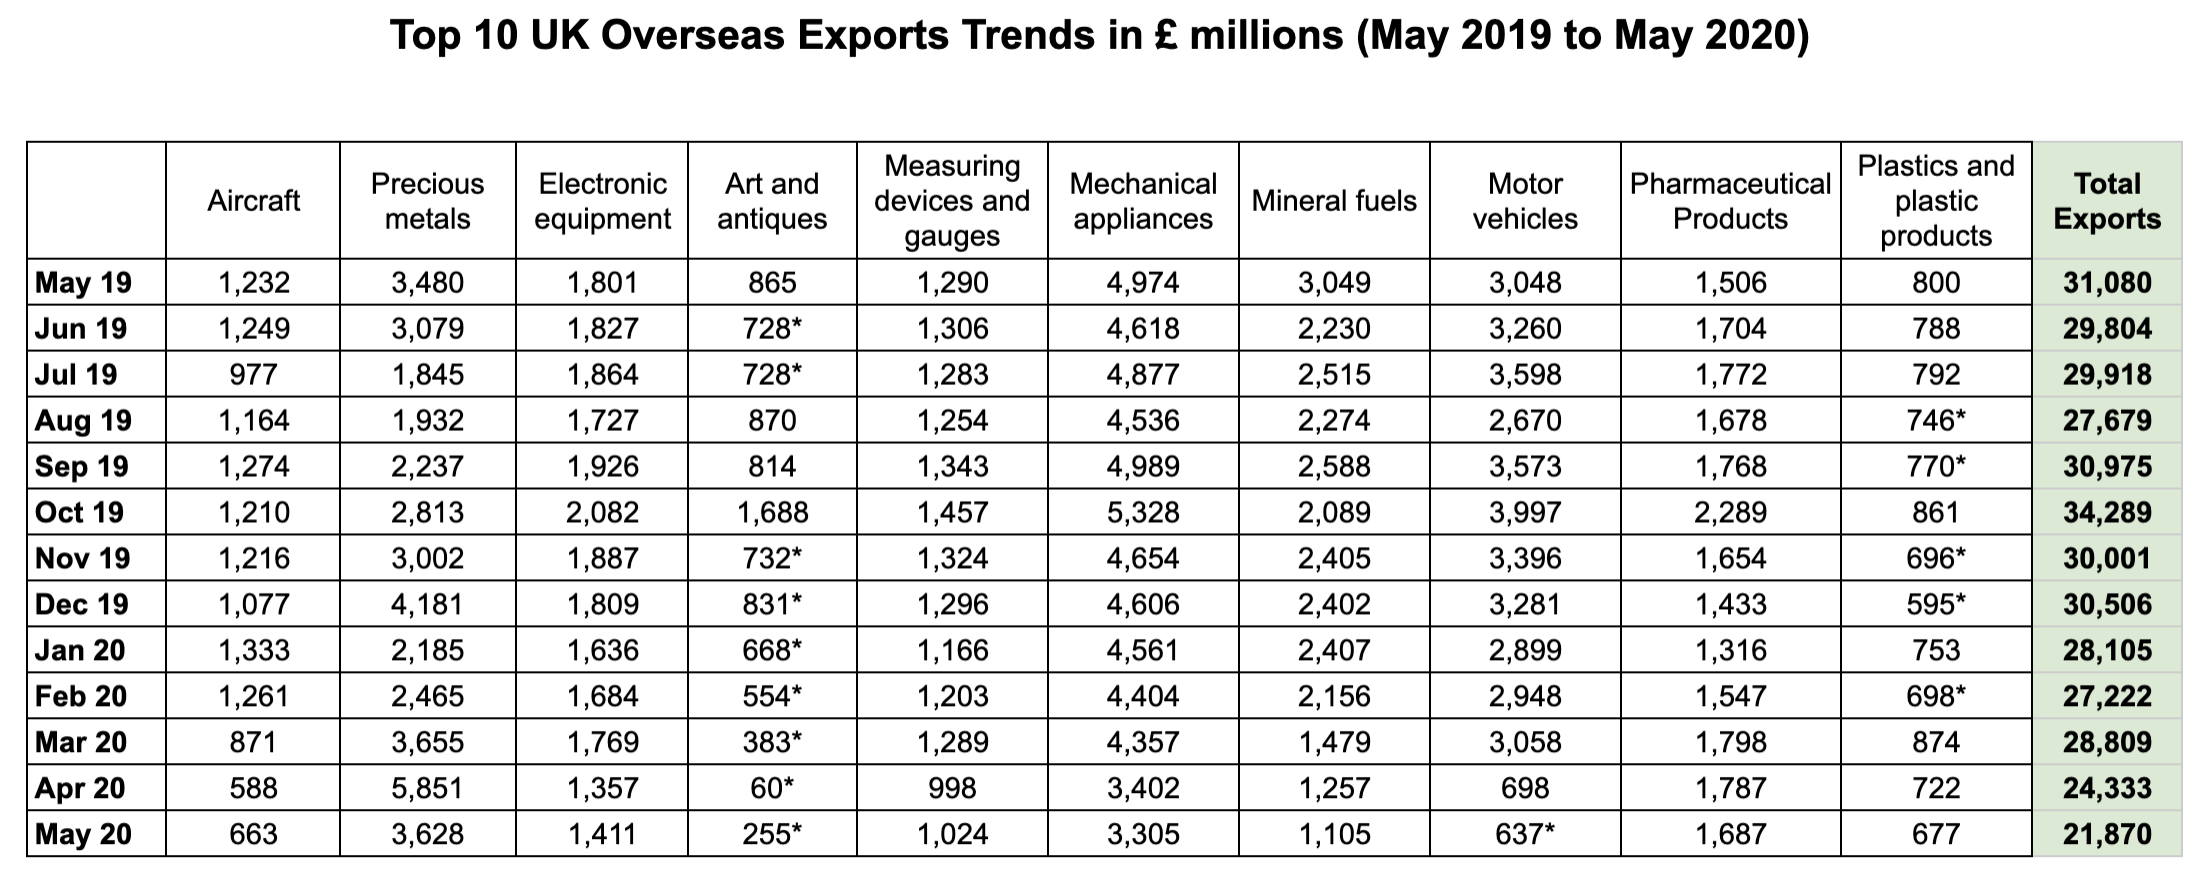 Top 10 UK Overseas Exports Trends in £ millions (May 2019 to May 2020)